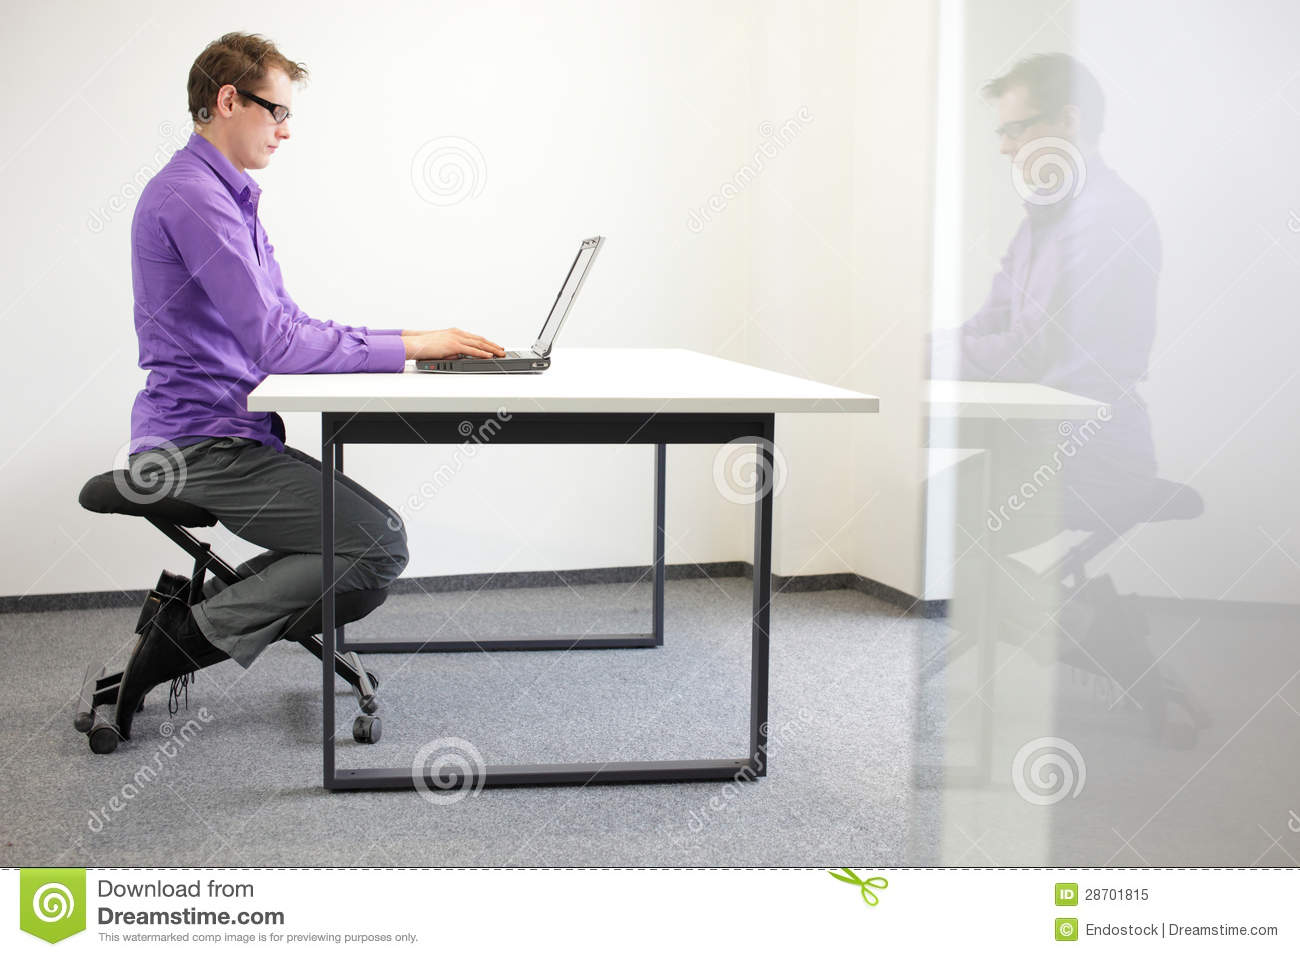 ergonomic chair keyboard position squat stand-ups correct sitting at workstation royalty free stock